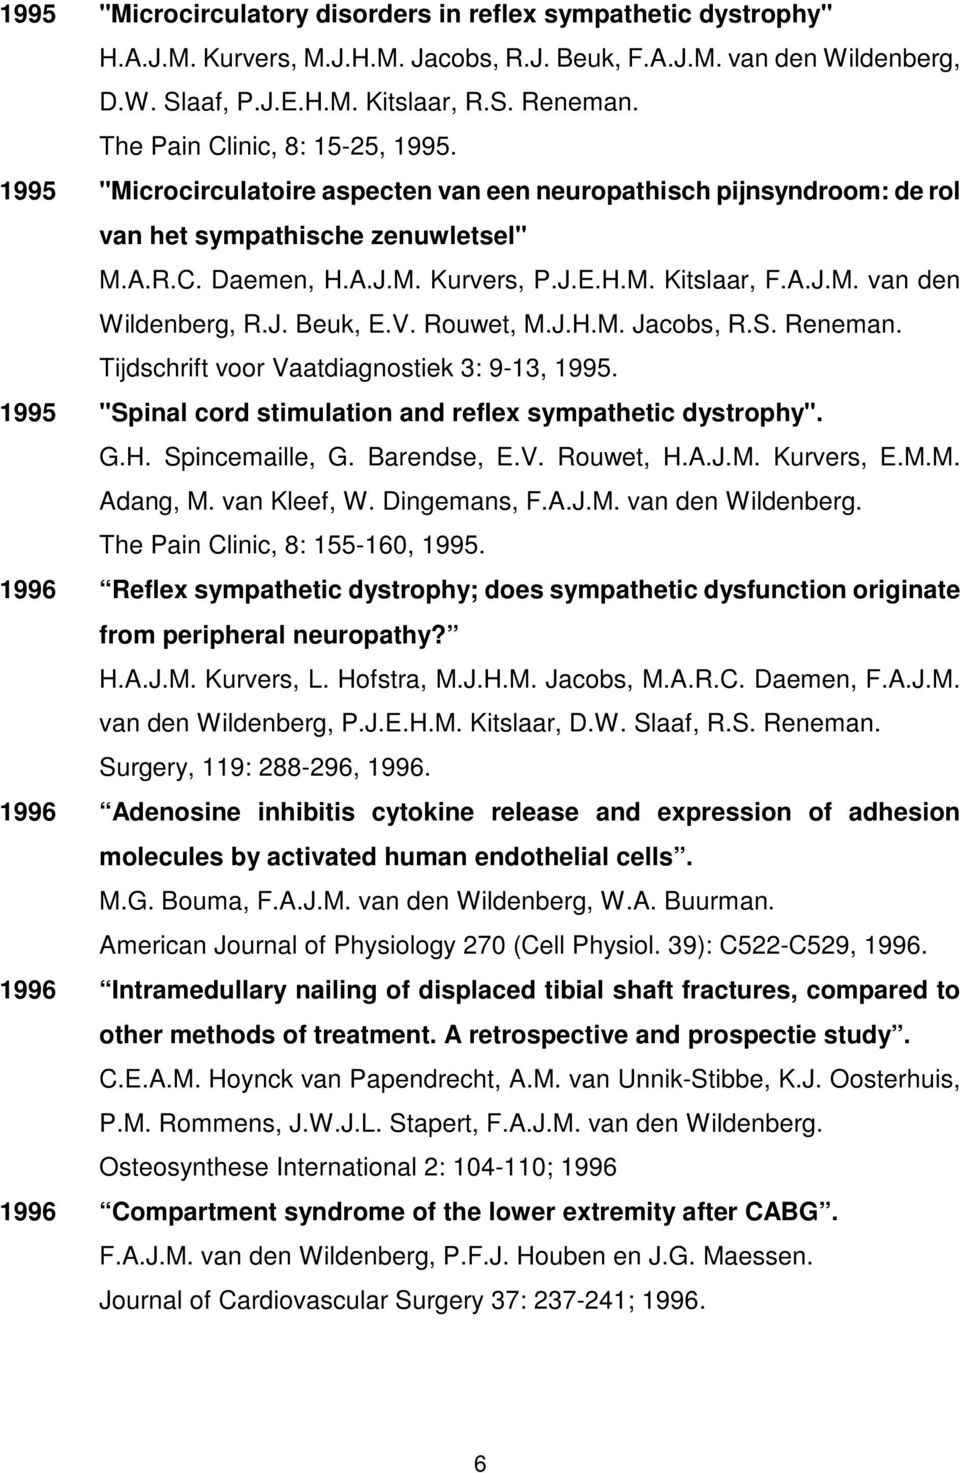 "A.J.M. van den Wildenberg, R.J. Beuk, E.V. Rouwet, M.J.H.M. Jacobs, R.S. Reneman. Tijdschrift voor Vaatdiagnostiek 3: 9-13, 1995. 1995 ""Spinal cord stimulation and reflex sympathetic dystrophy"". G.H. Spincemaille, G."